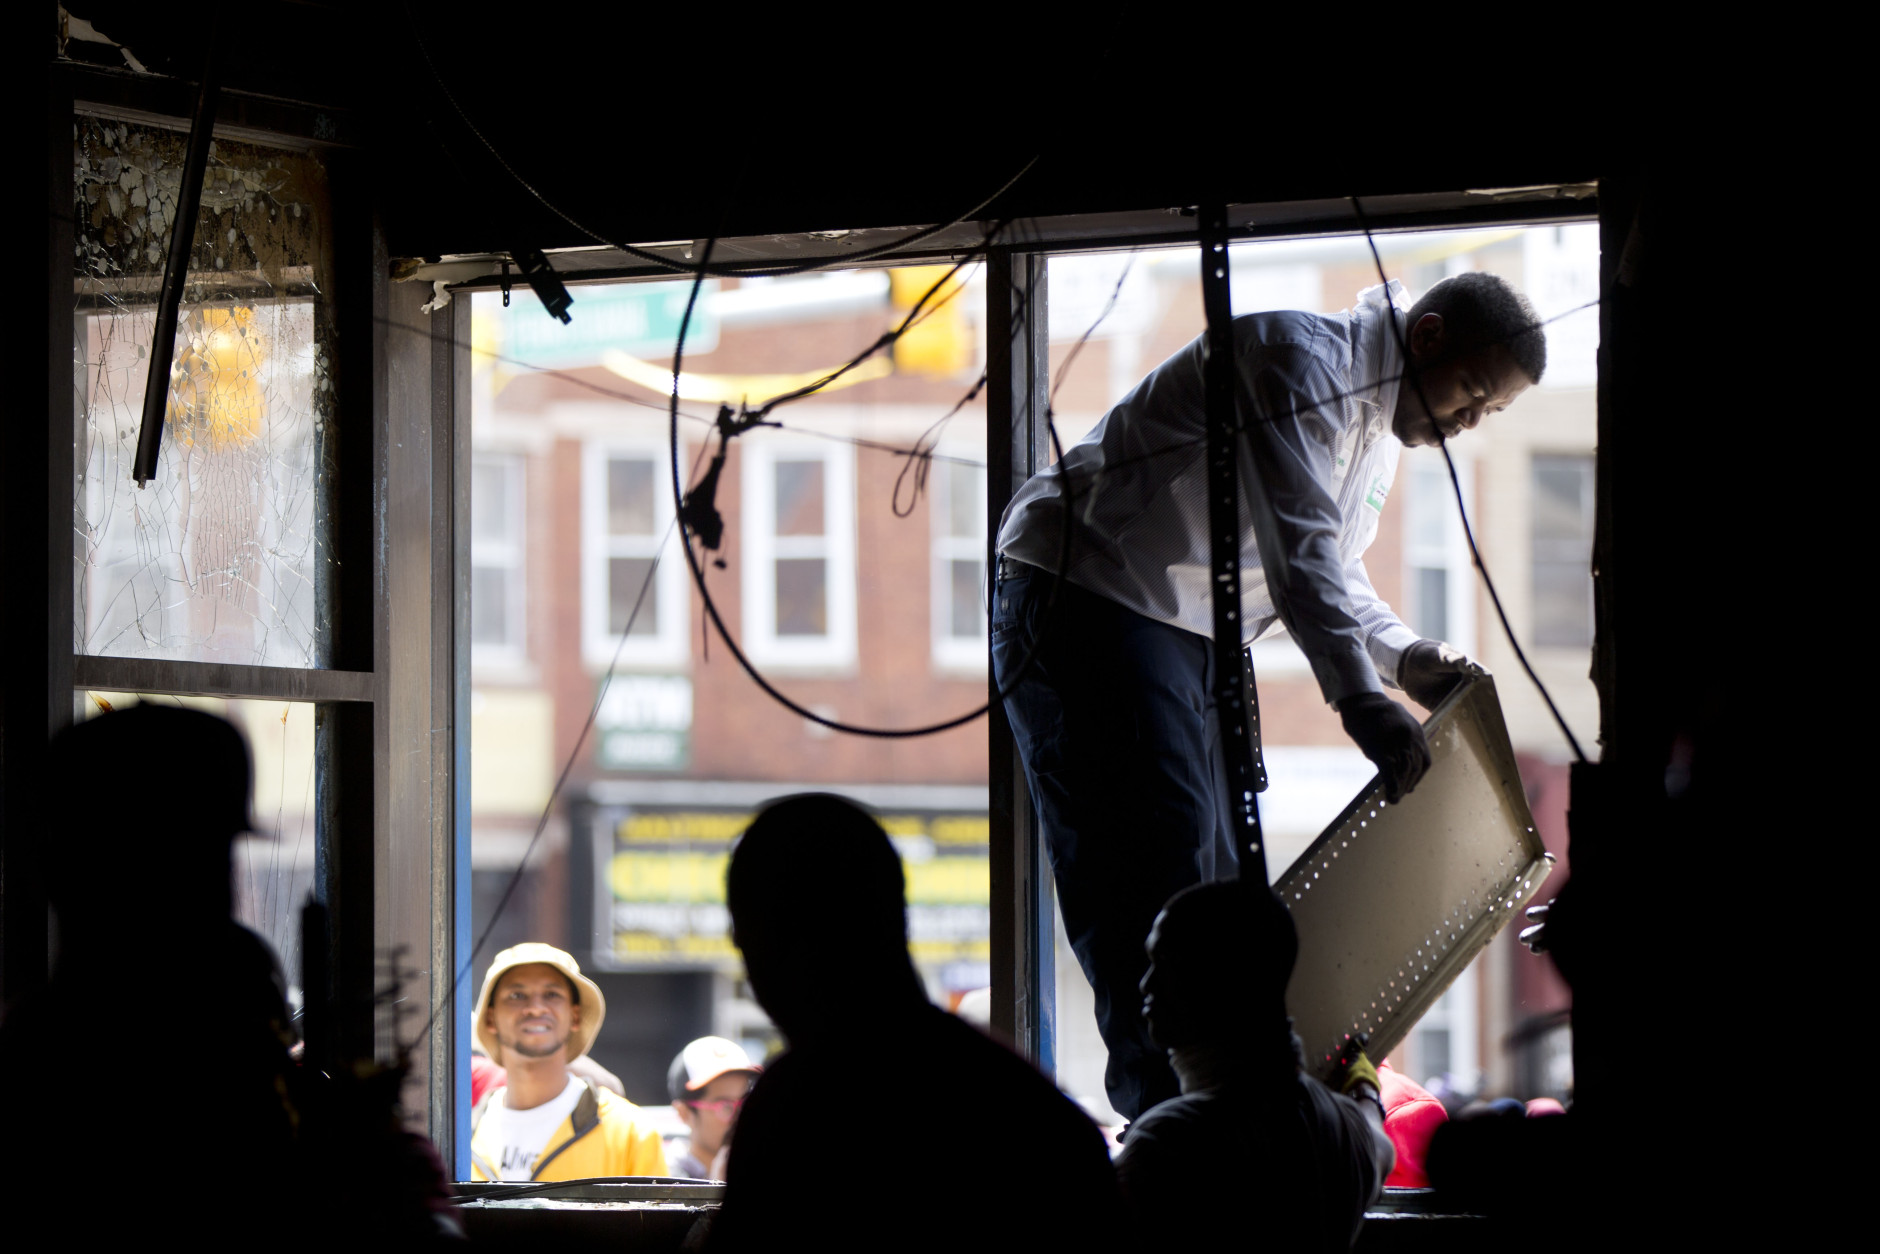 Volunteers clean a CVS pharmacy Tuesday, April 28, 2015, in Baltimore, in the aftermath of rioting following Monday's funeral for Freddie Gray, who died in police custody. Hundreds of volunteers are cleaning up the wreckage left by rioters in the neighborhood where Freddie Gray was arrested. (AP Photo/Matt Rourke)